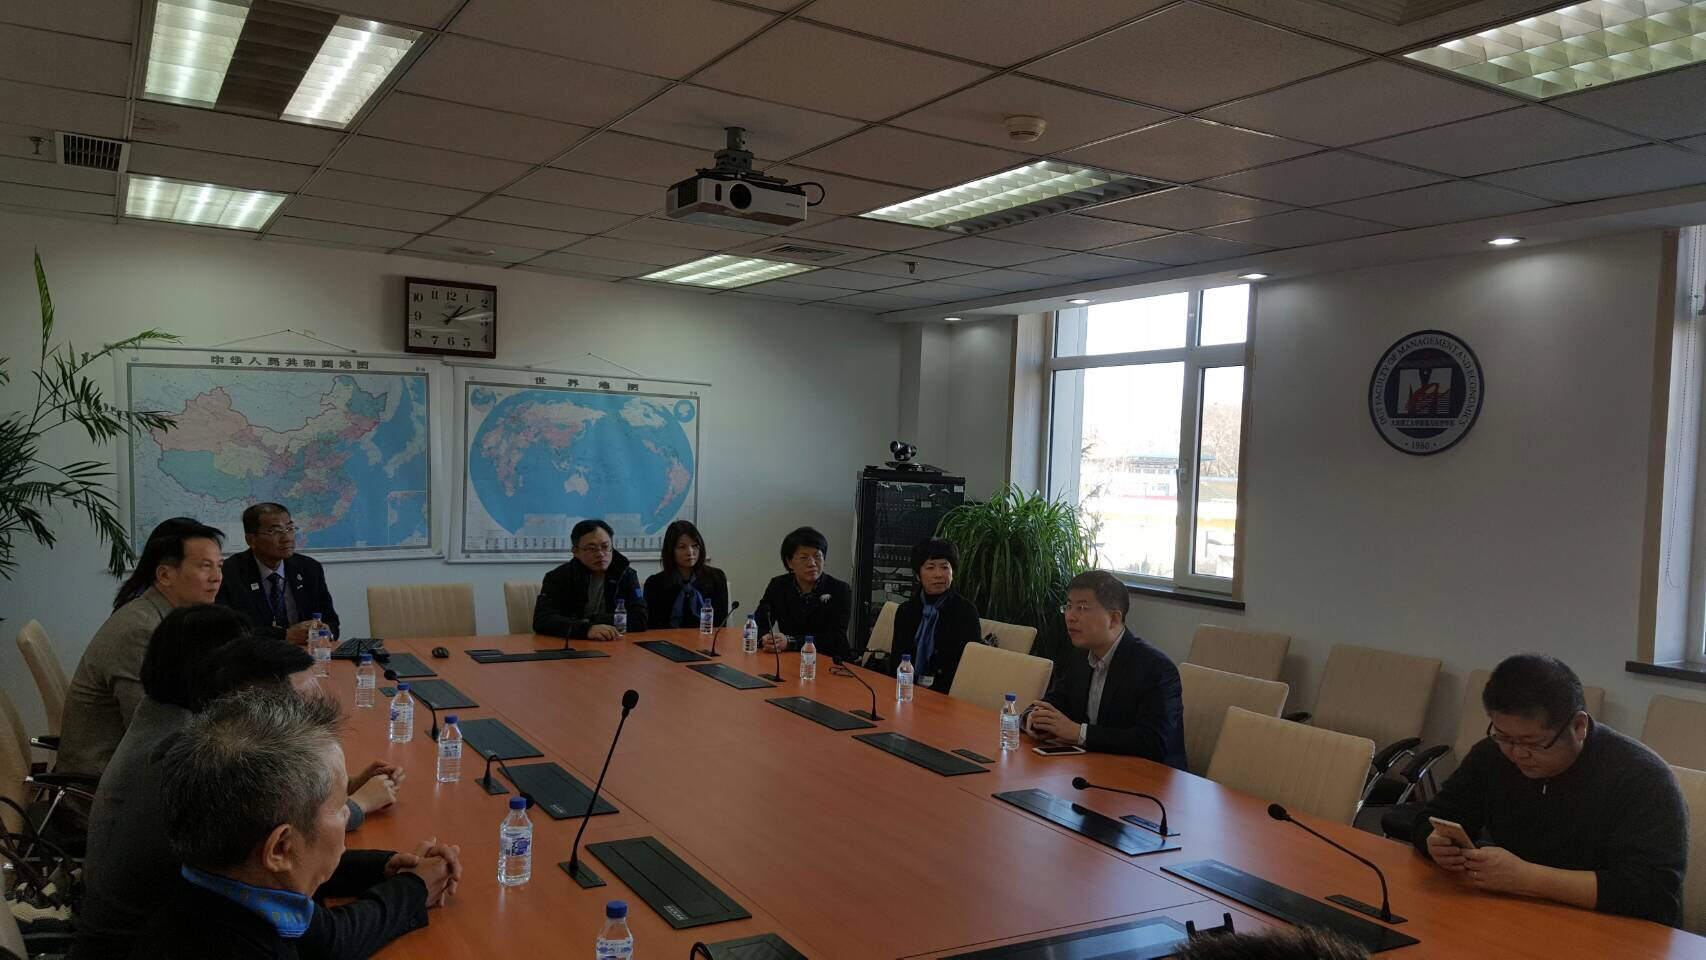 EMBA went to Dalian University of Technology for teaching for the second time